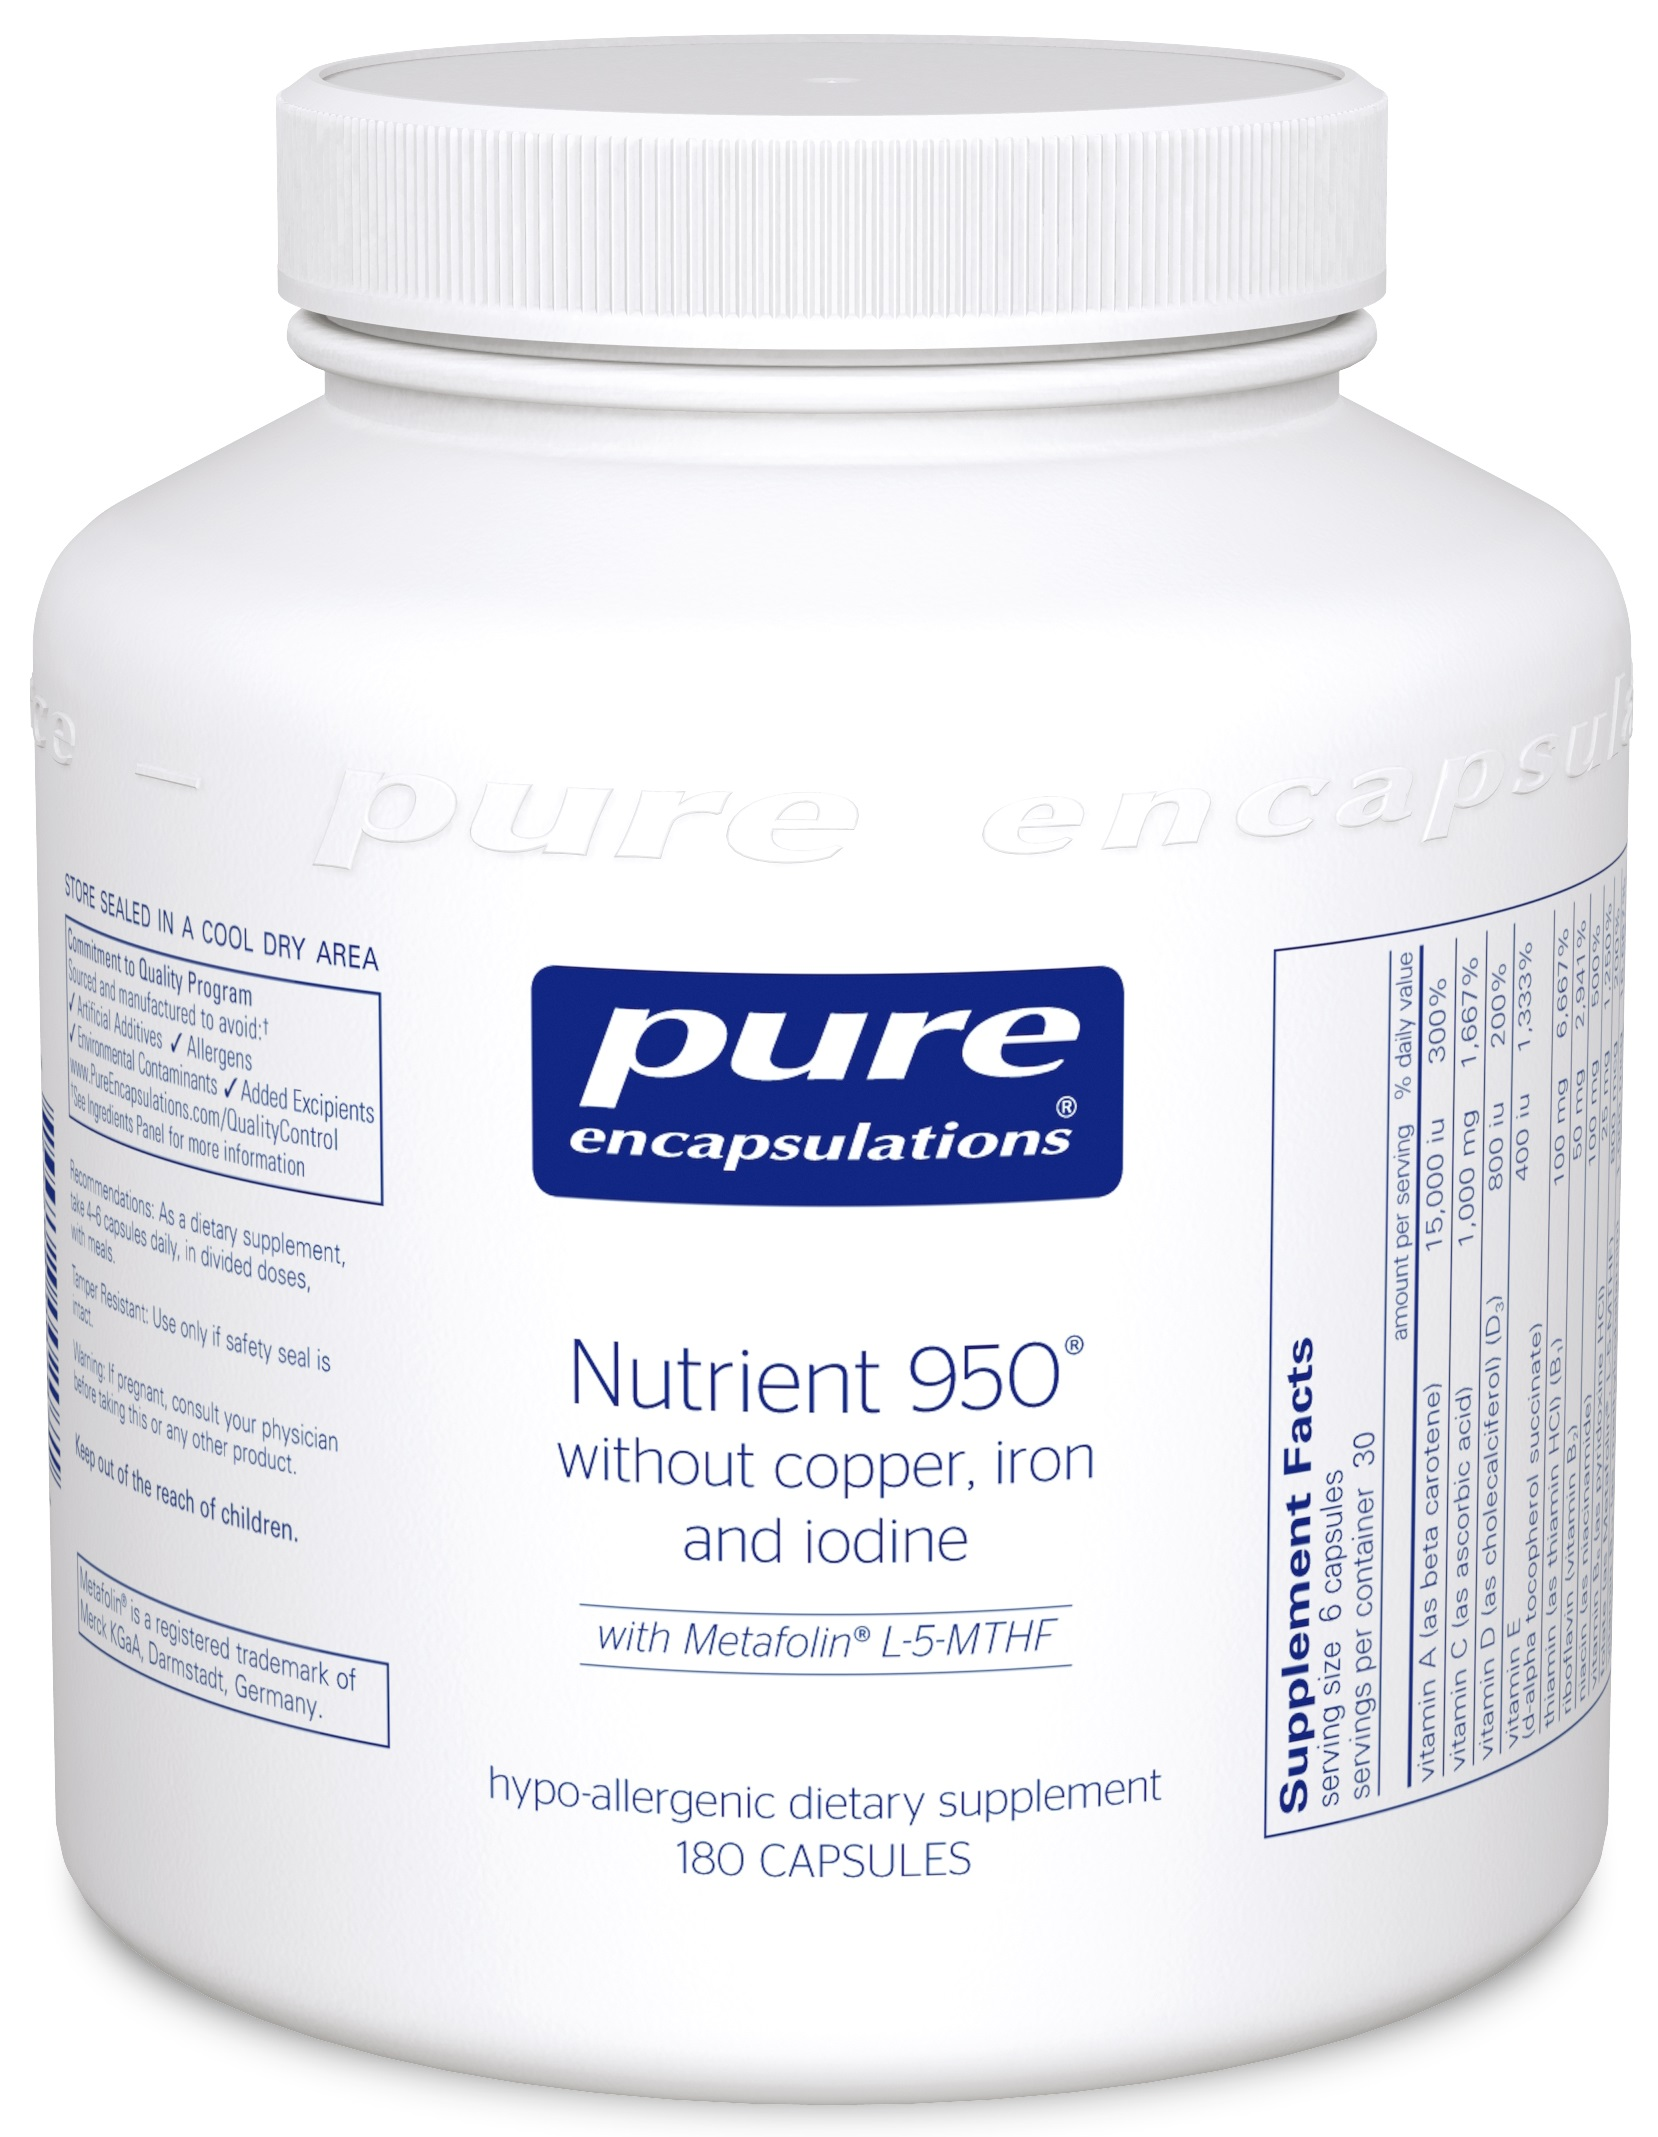 Pure Encapsulations Nutrient 950 without Cu, Fe & I